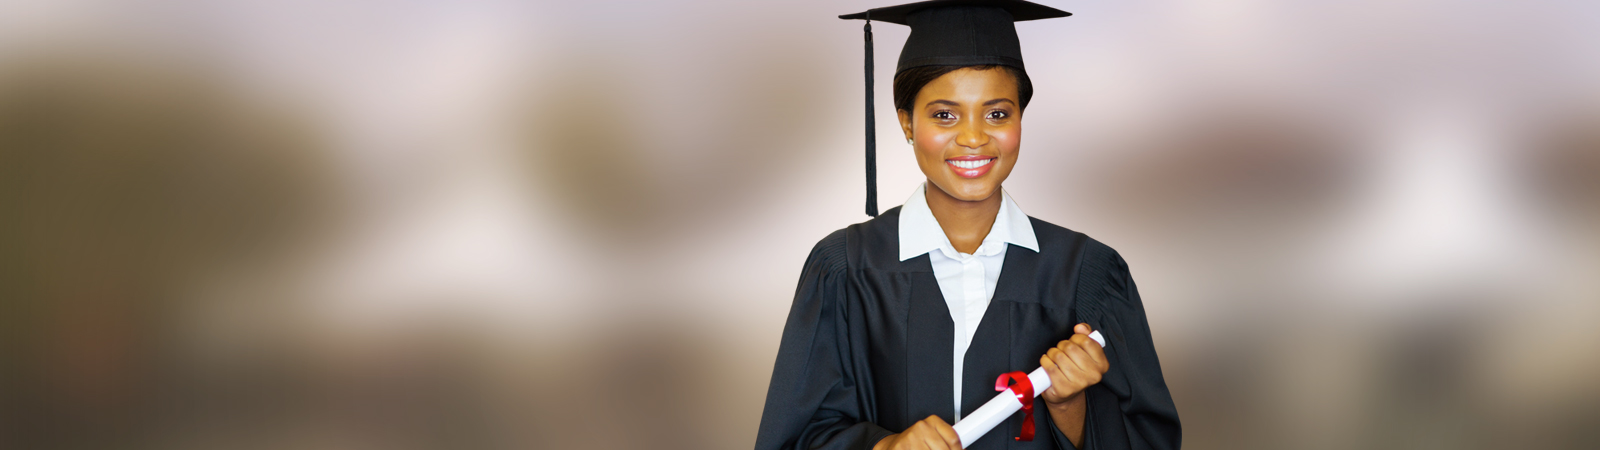 8th Cavendish University Uganda's Graduation Ceremony